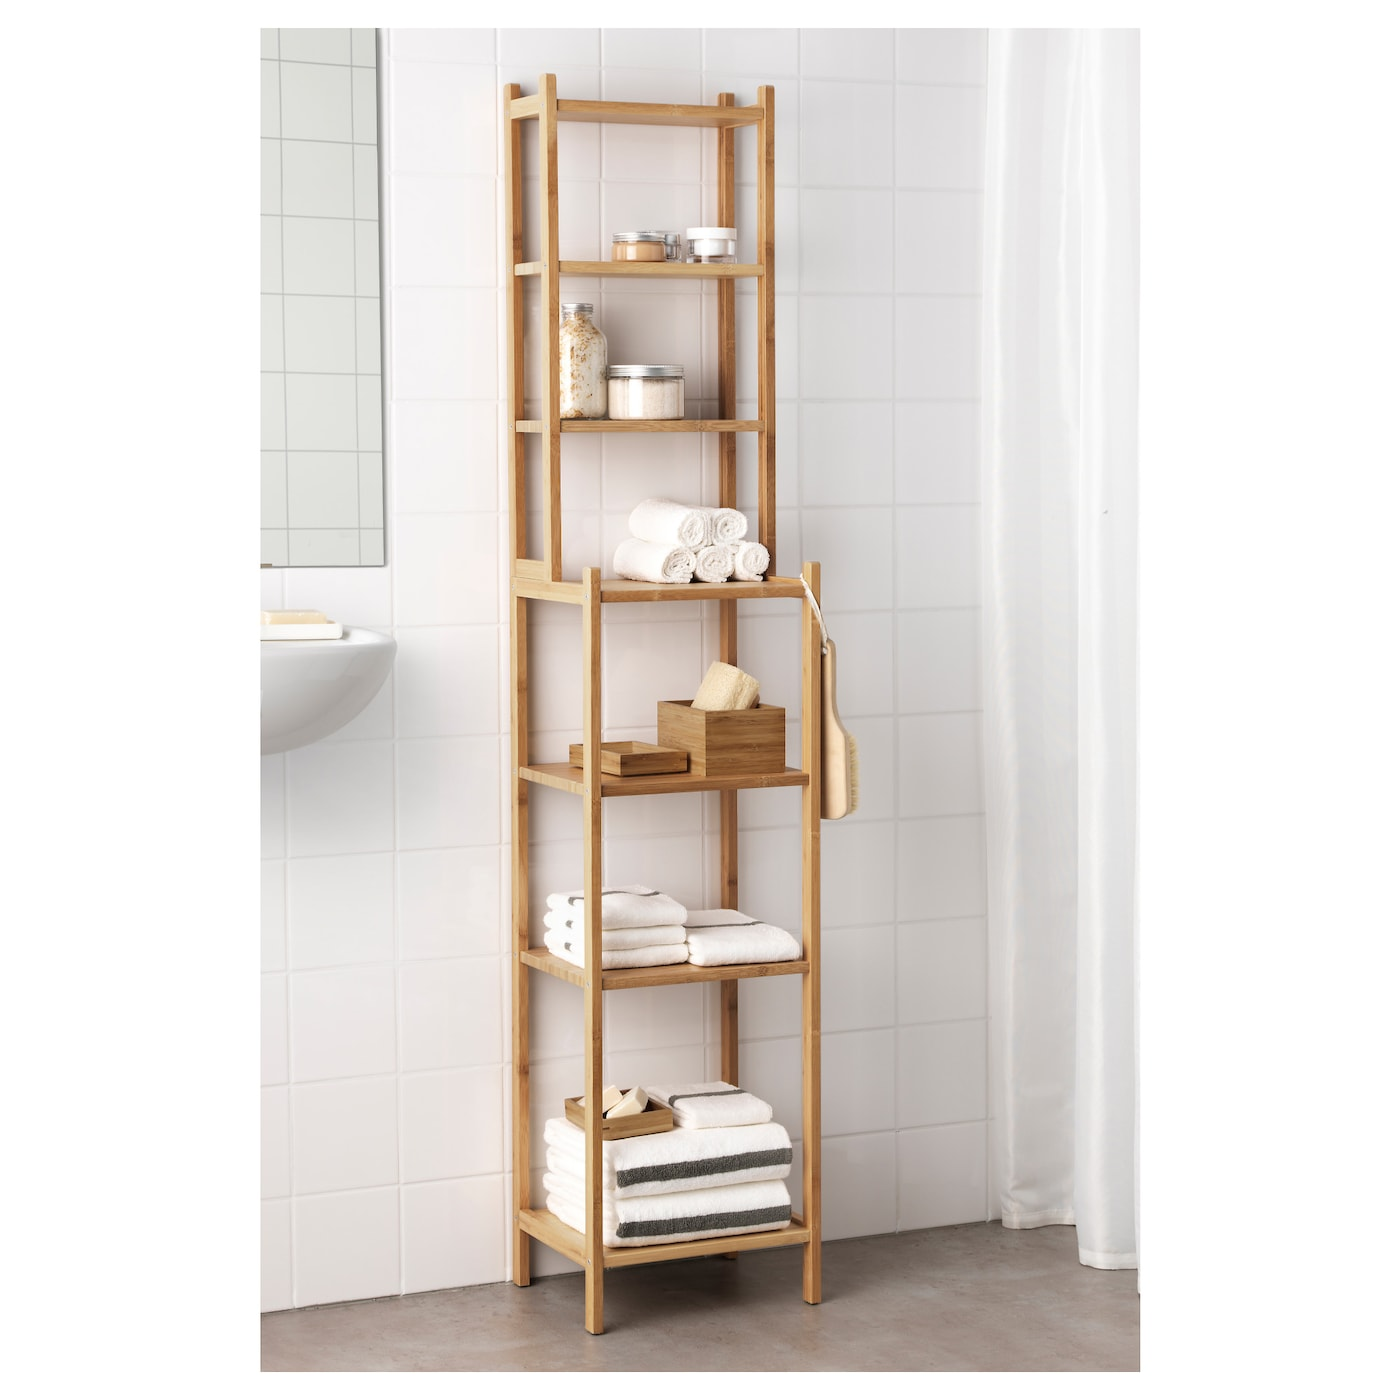 Ragrund Shelving Unit Bamboo Ikea Switzerland